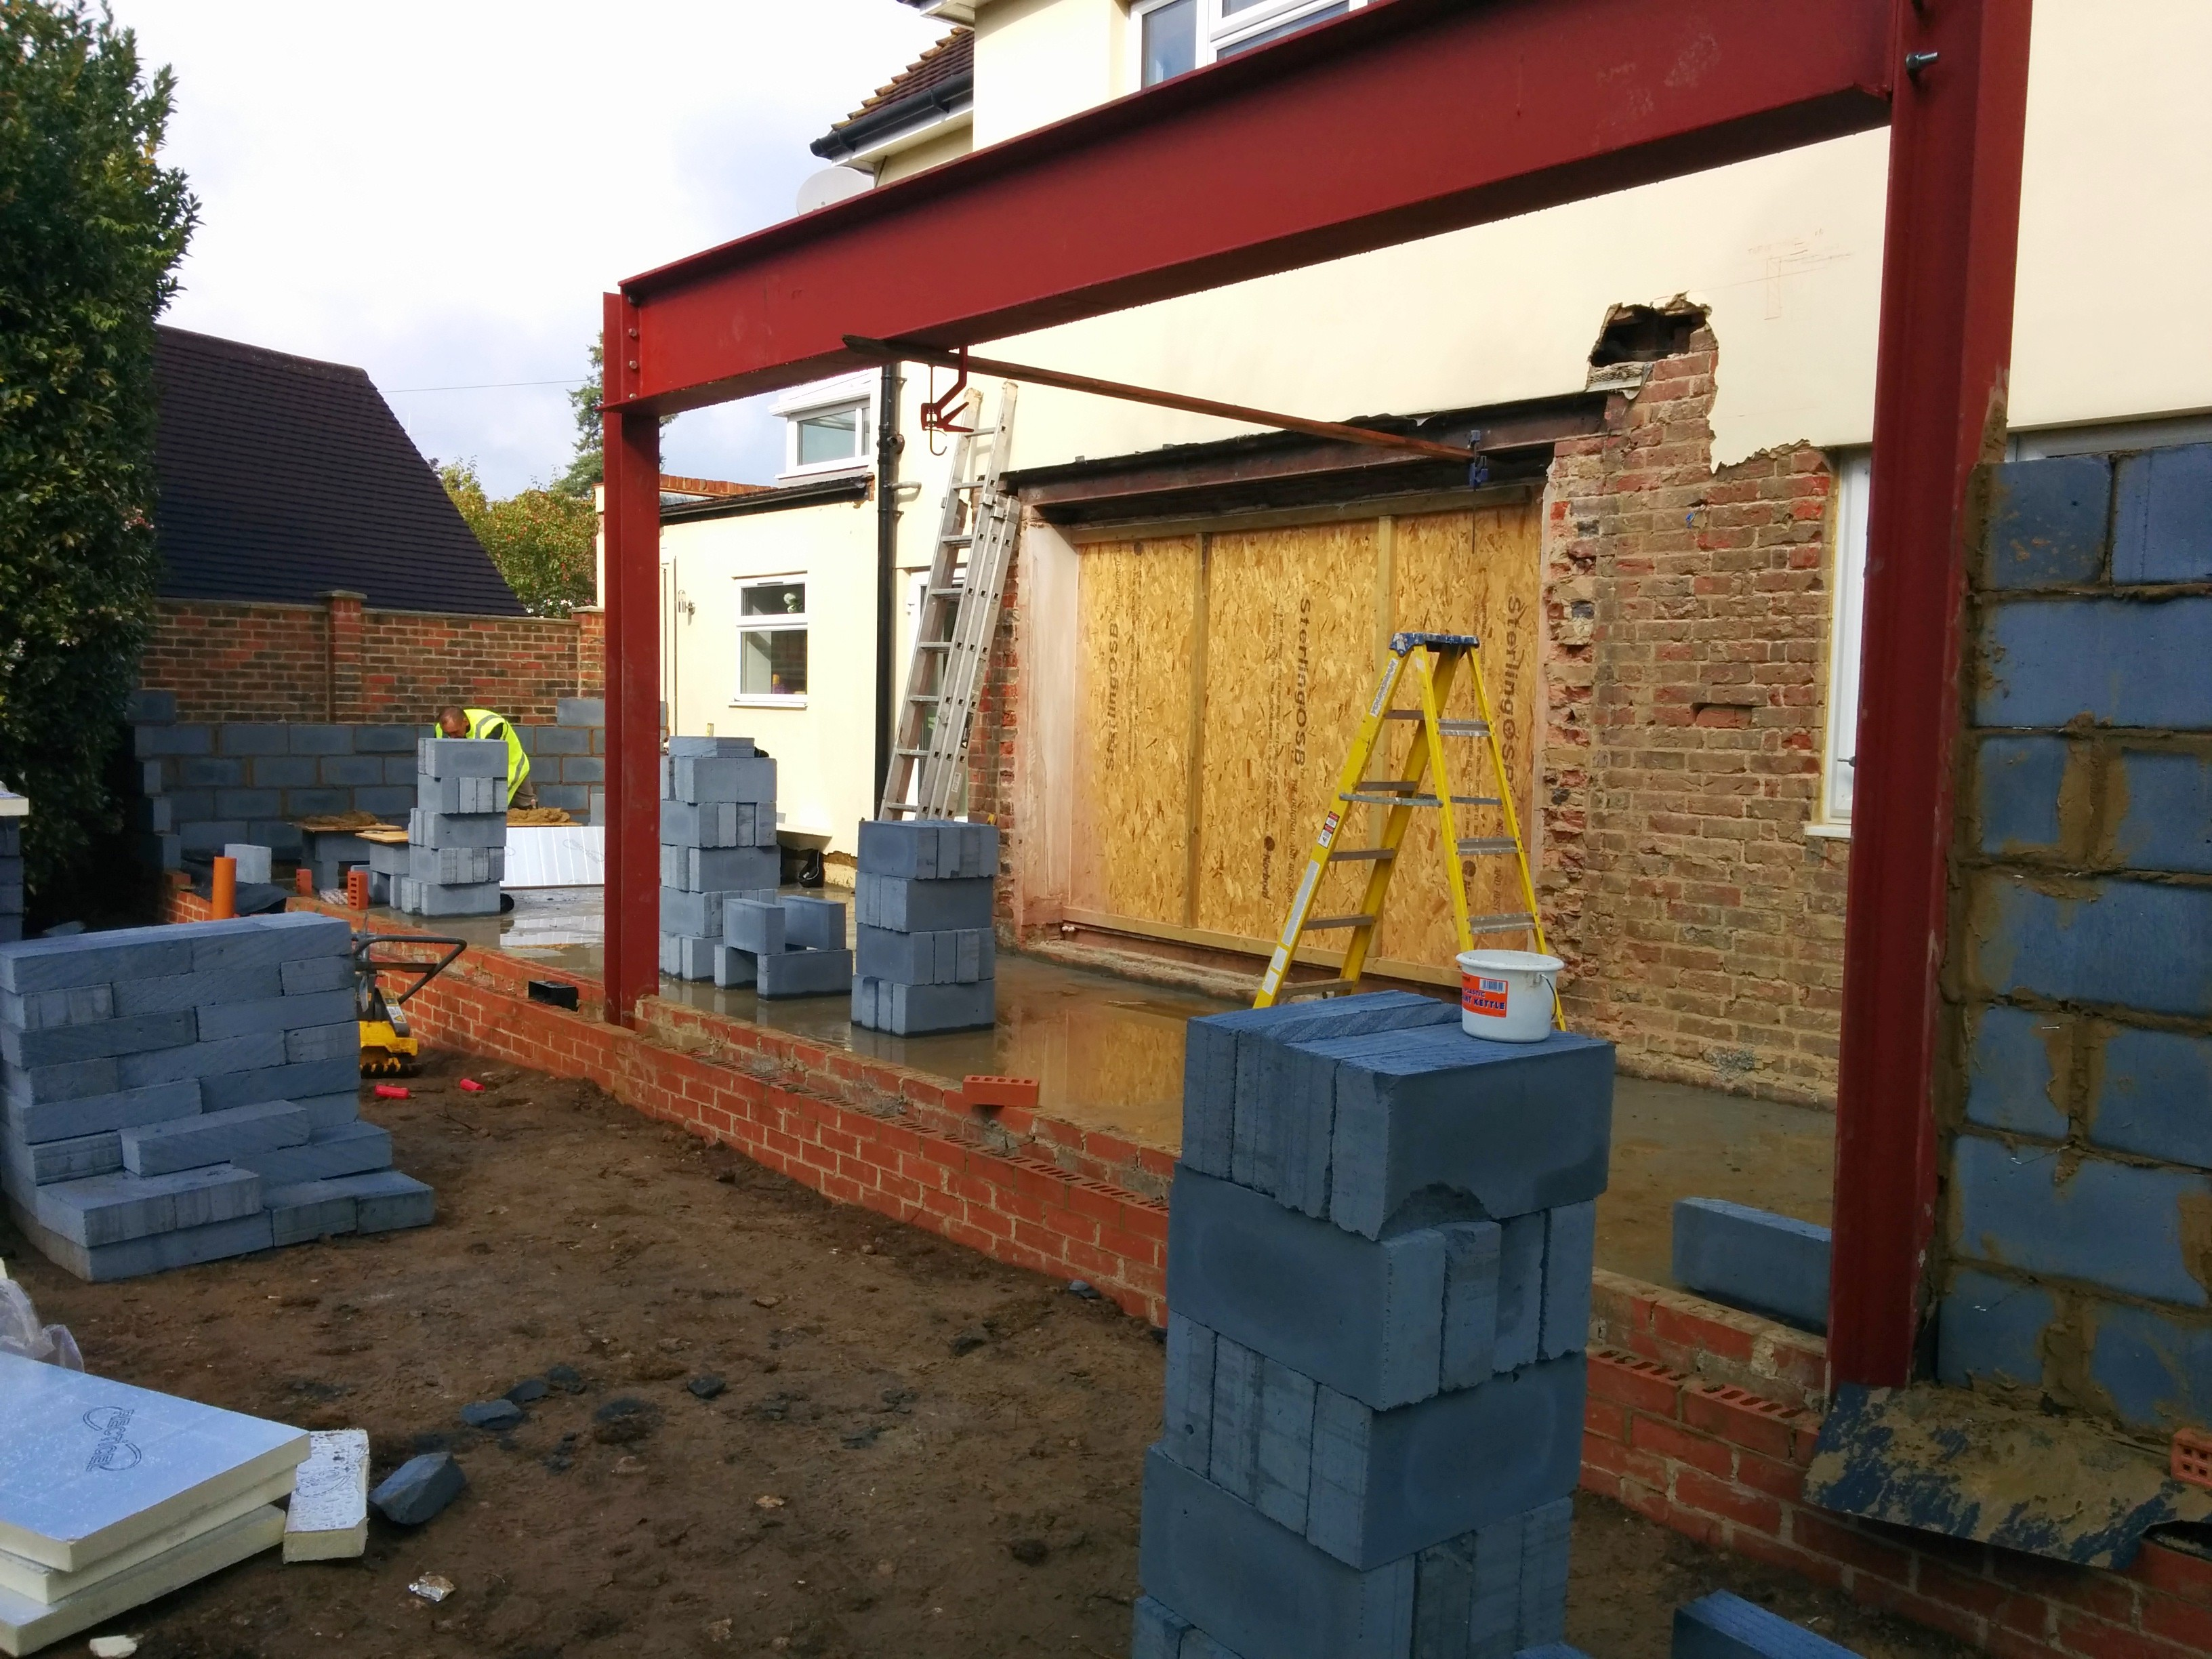 House extension in progress